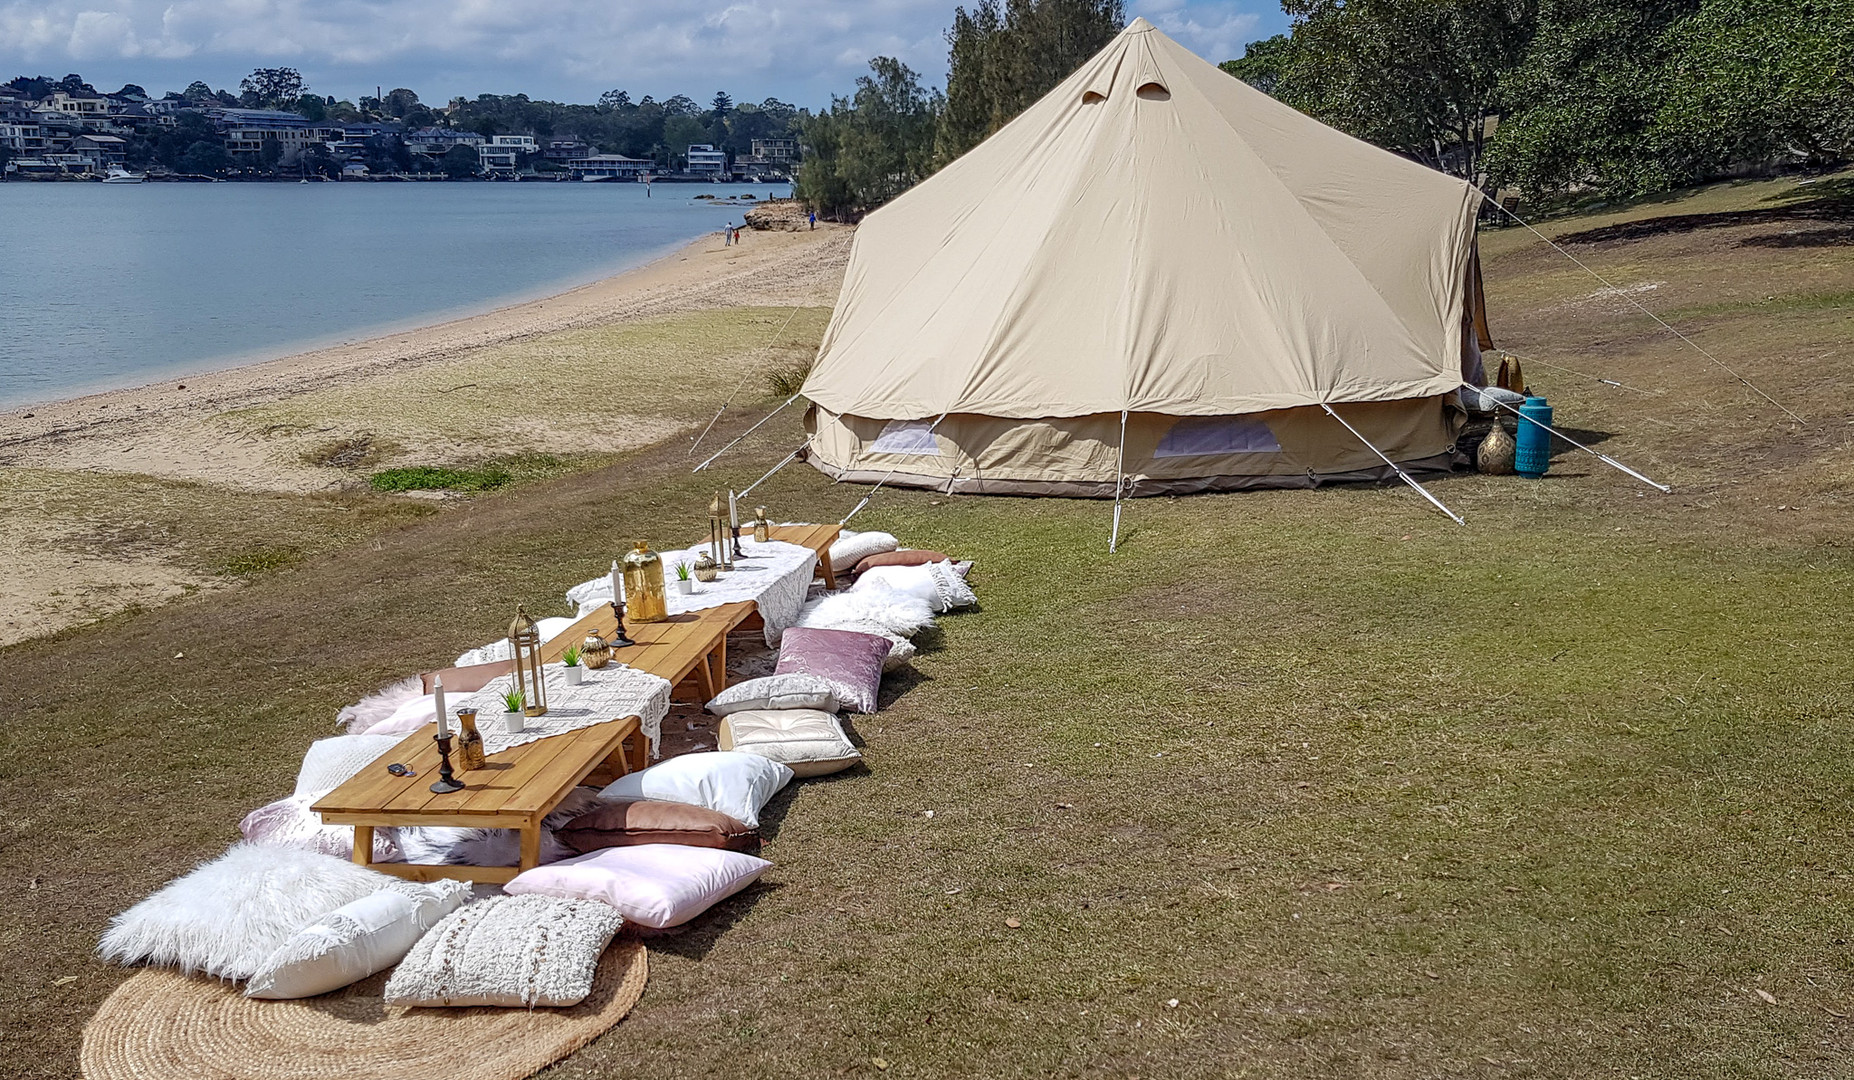 Double door tent and picnic for 25 in the park